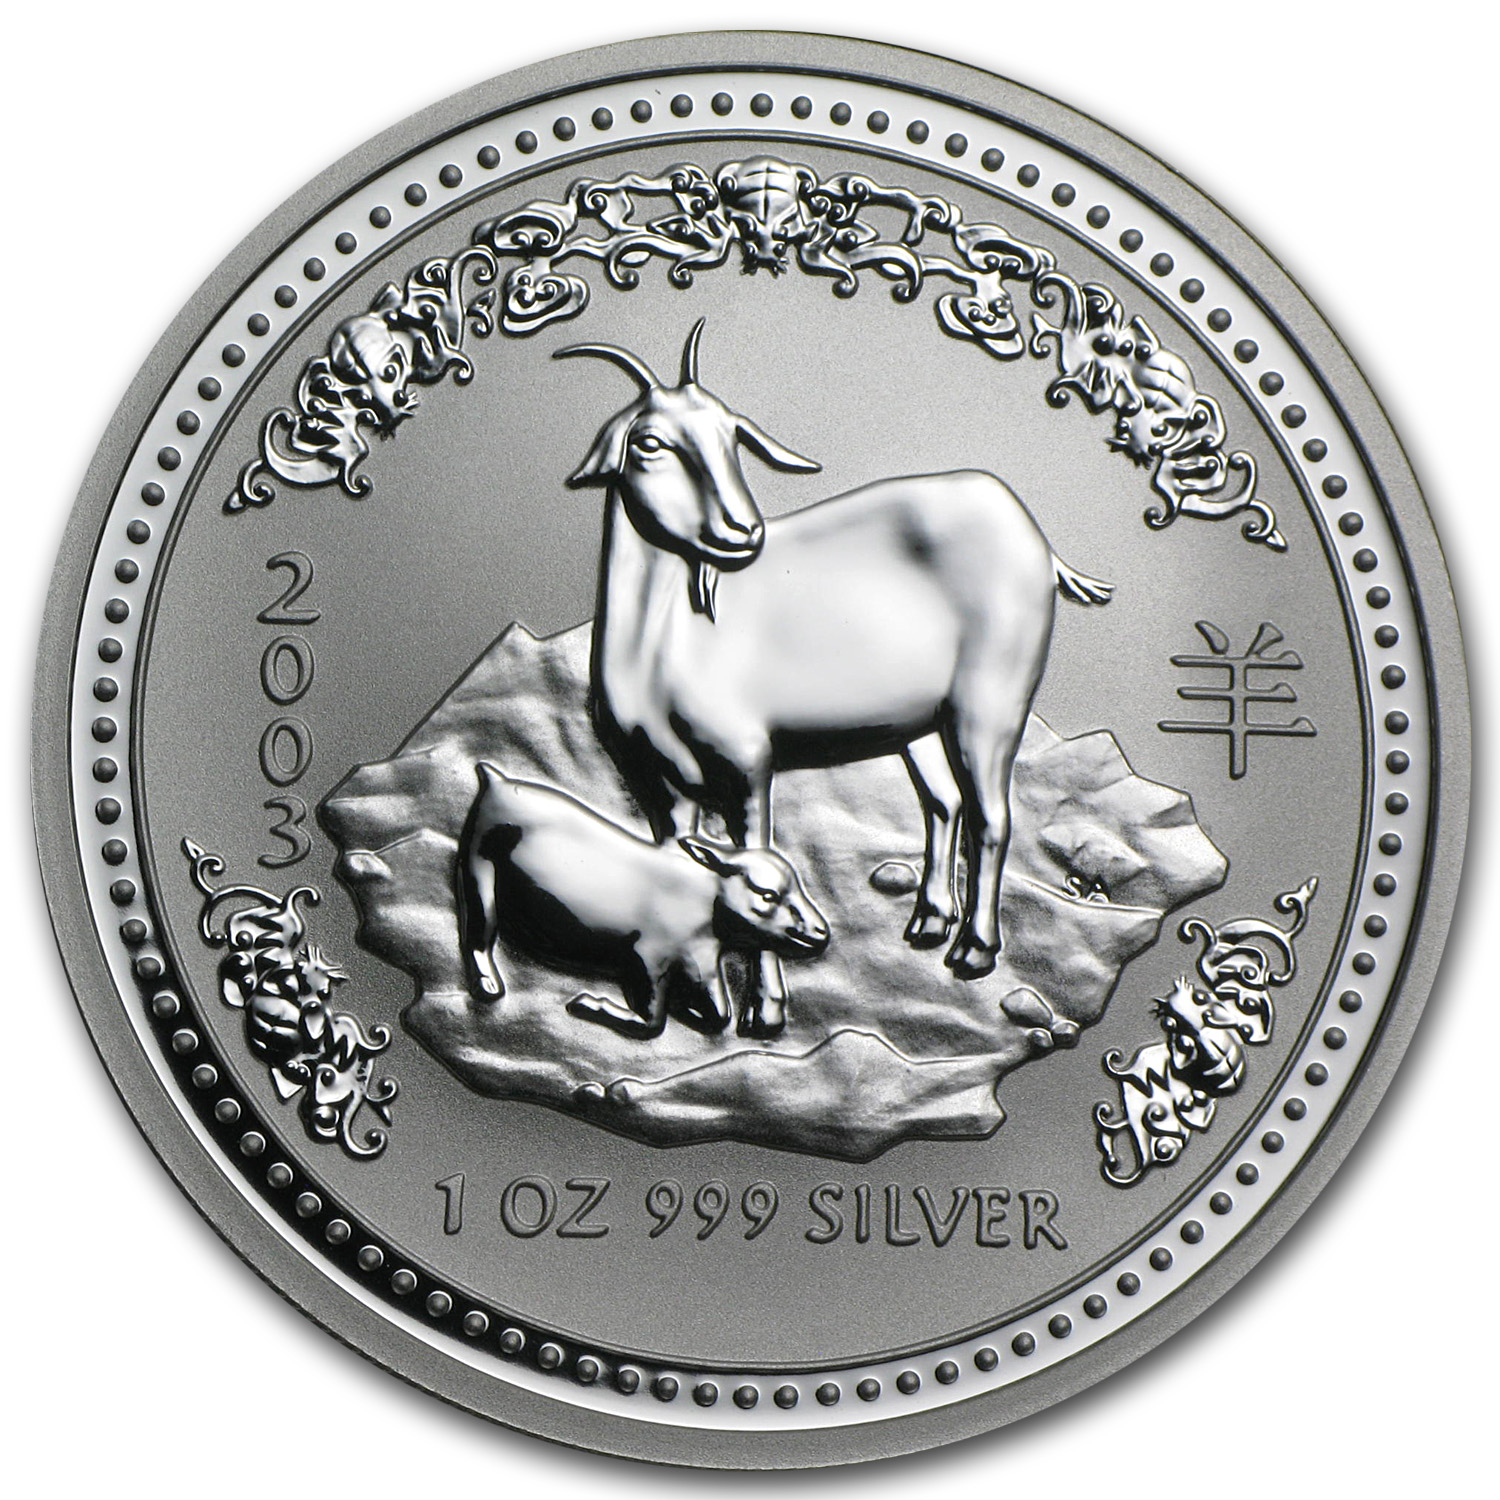 2003 1 oz Silver Lunar Year of the Goat (Series I)